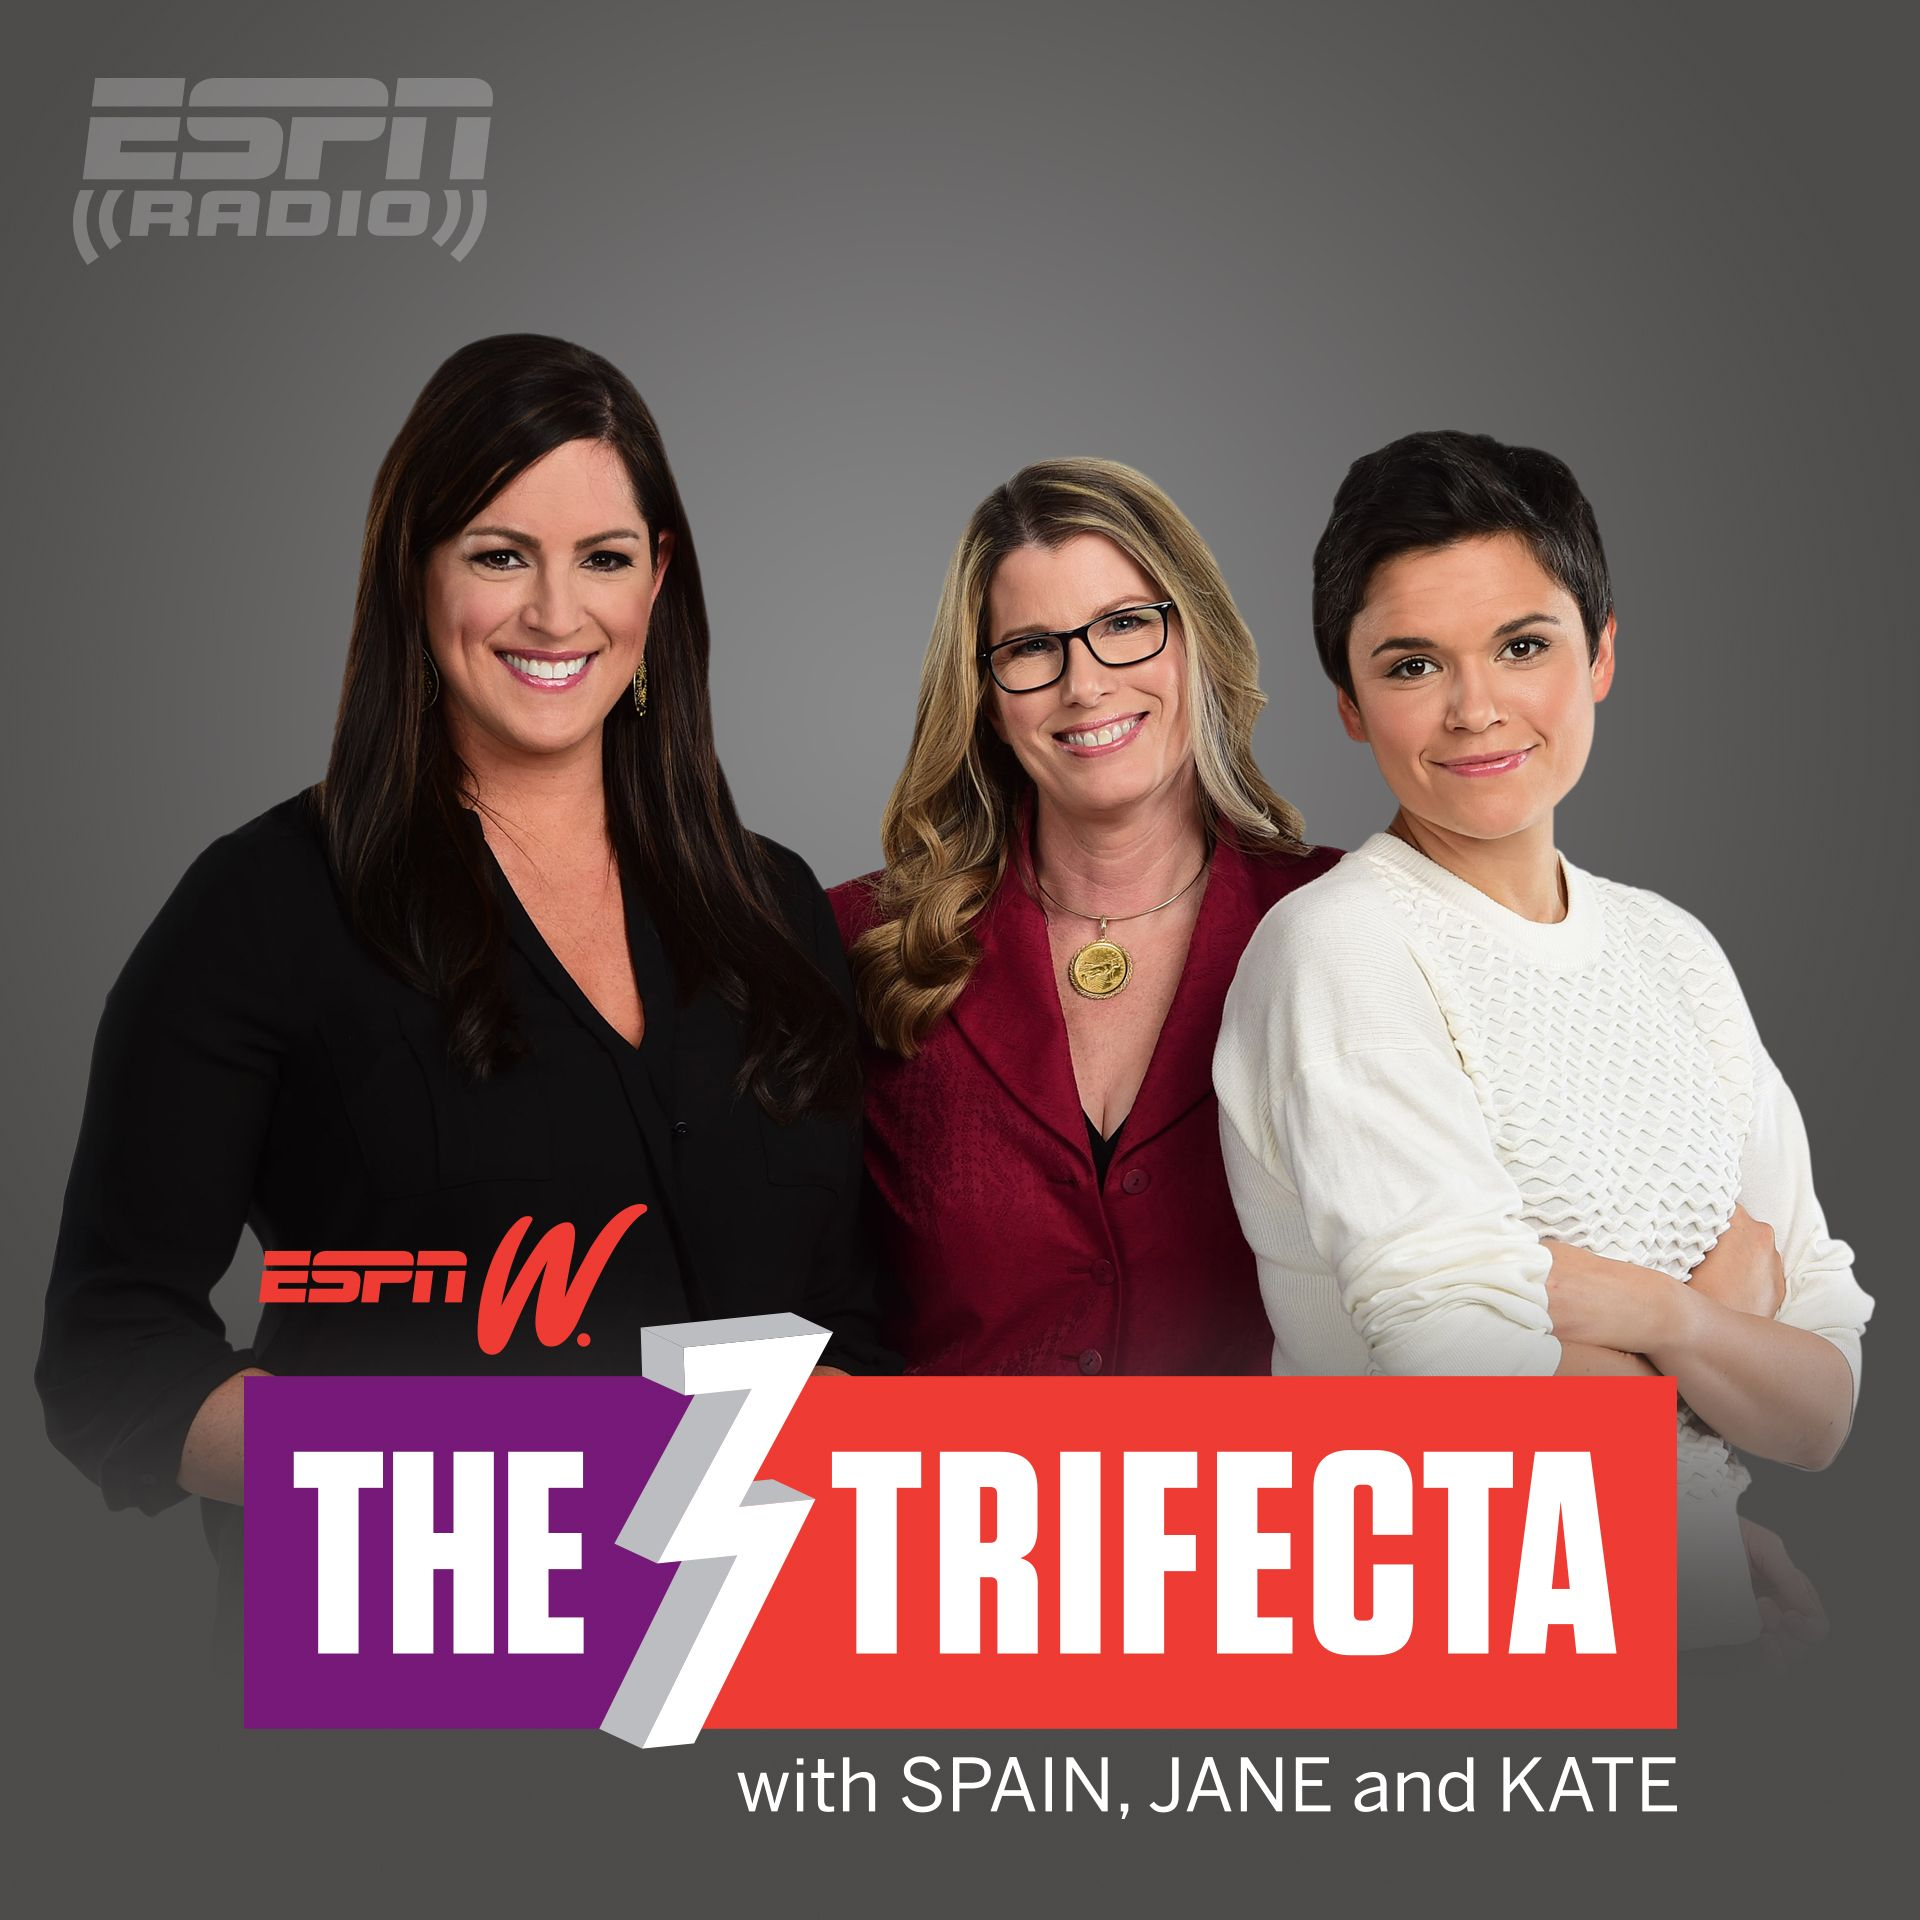 espnW's The Trifecta with Spain, Jane & Kate